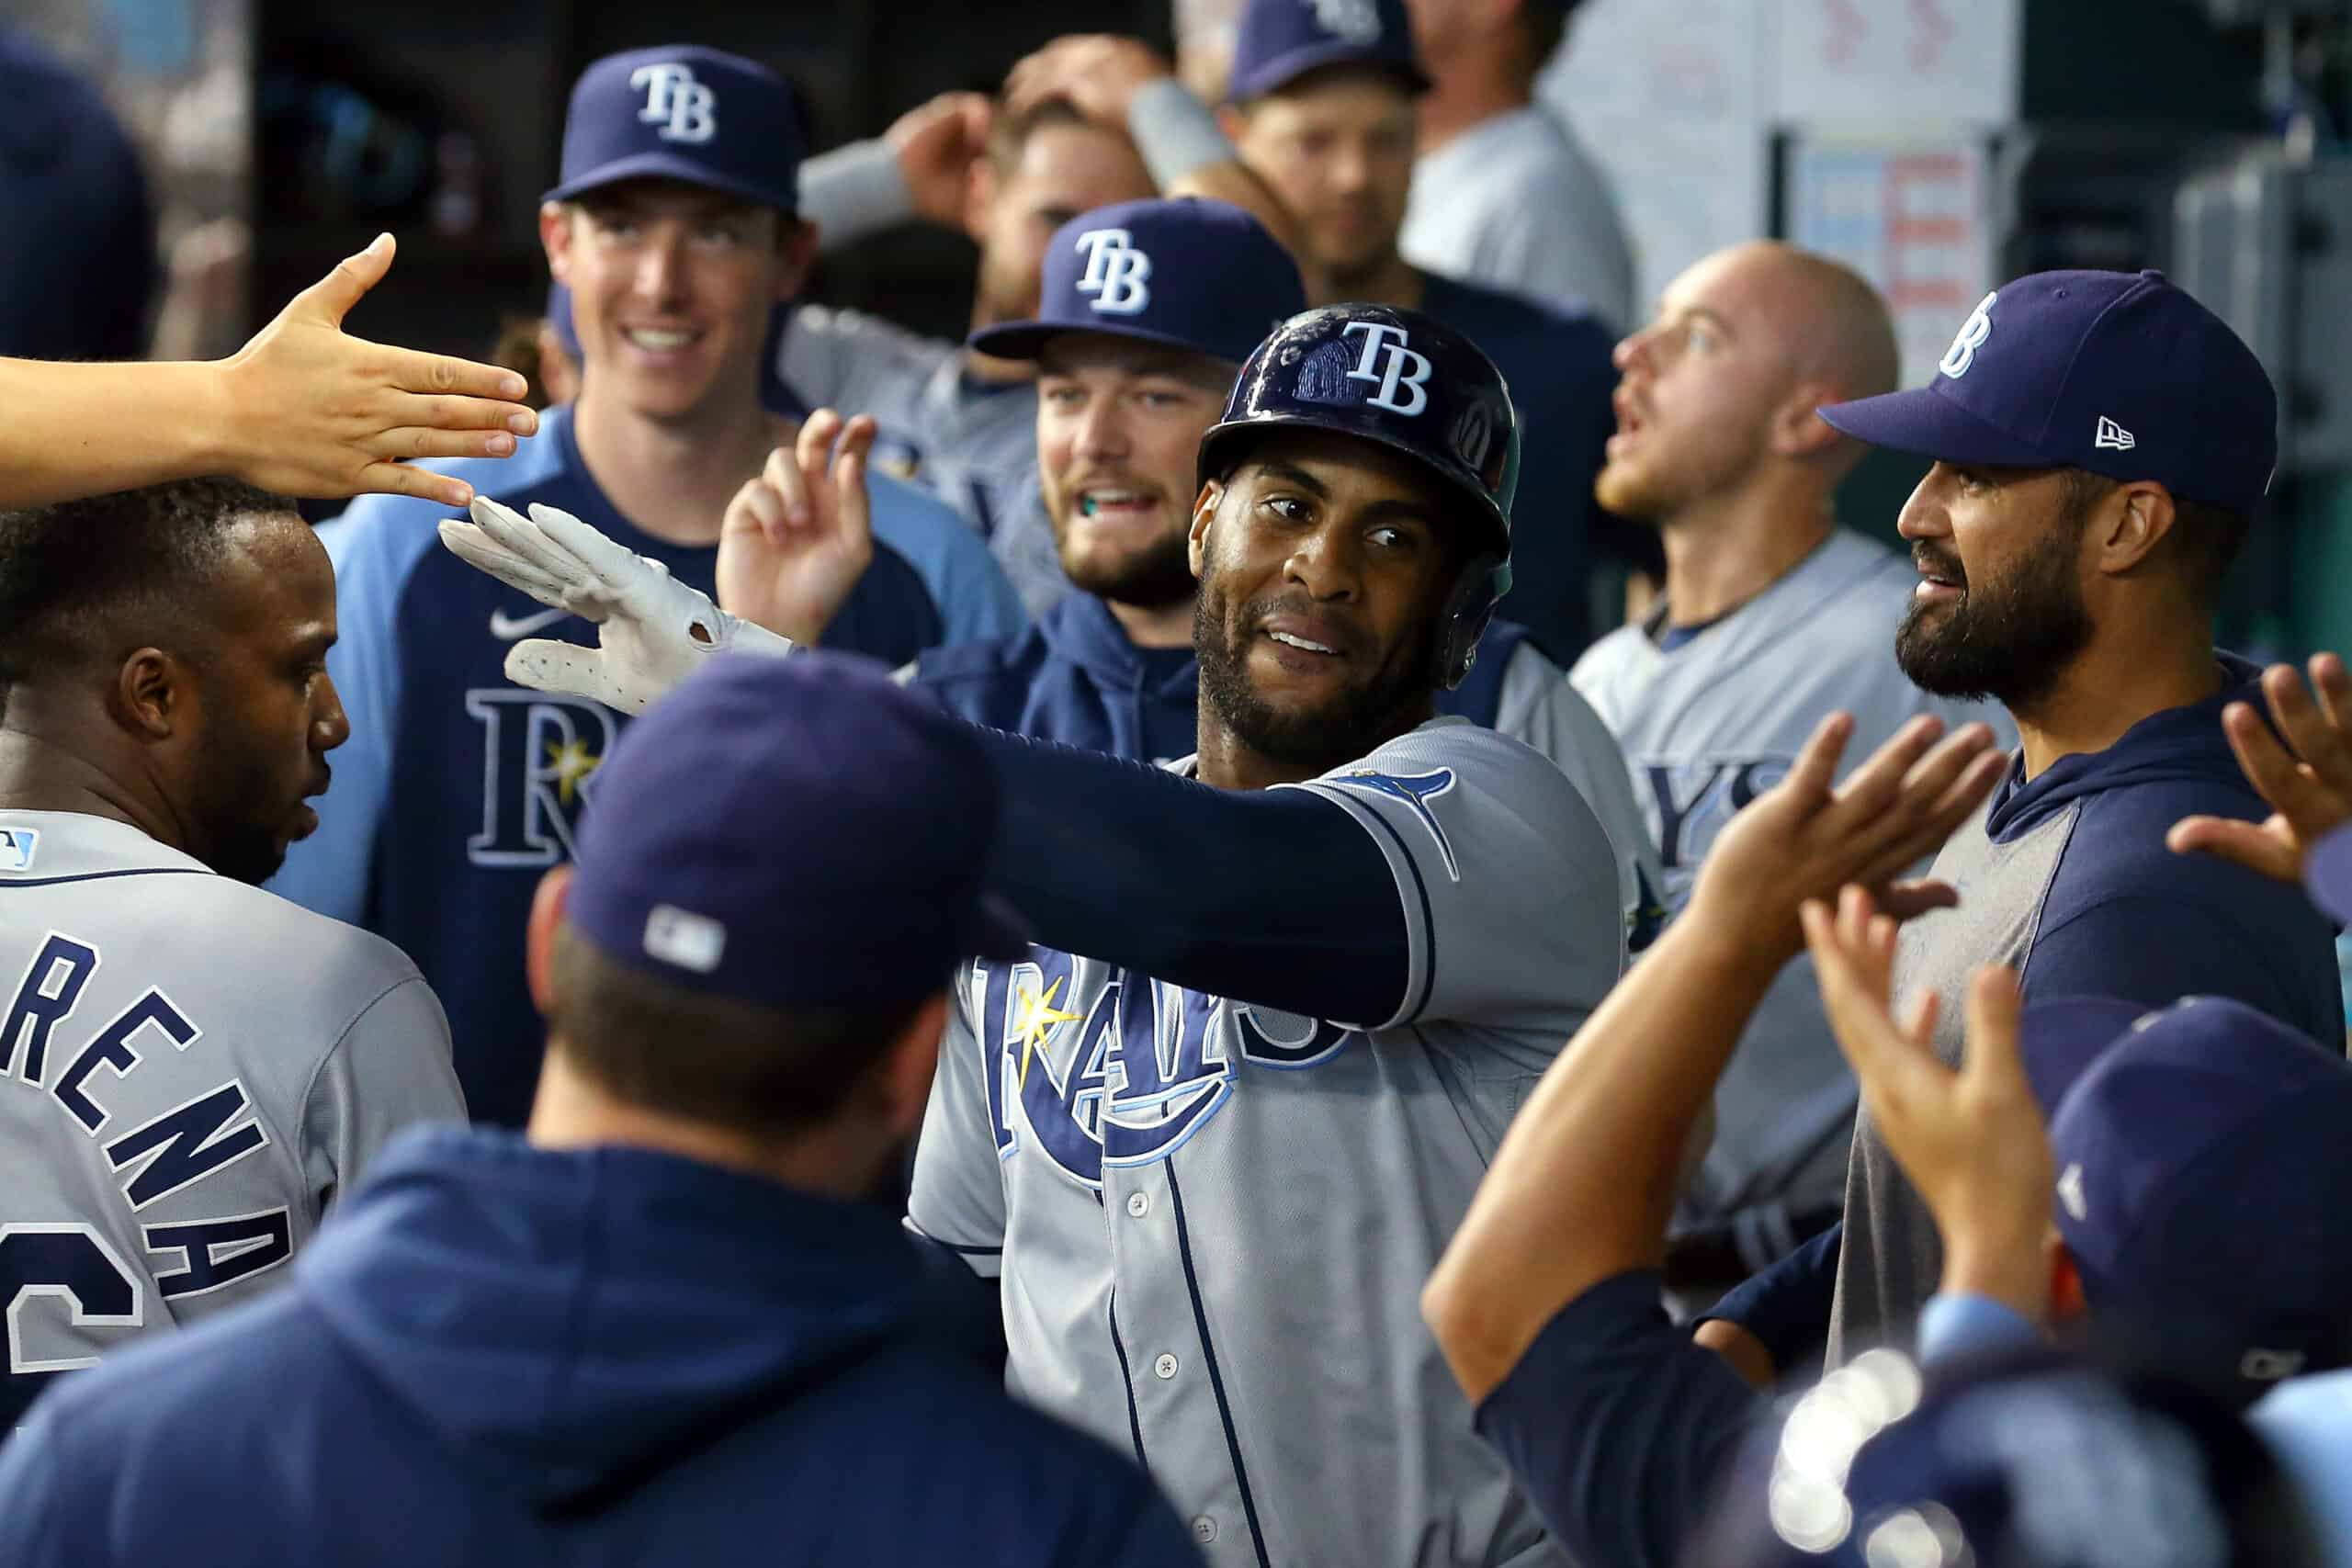 Yandy Diaz #2 of the Tampa Bay Rays is greeted in the dugout after his two-run home run against the Texas Rangers in the ninth inning at Globe Life Field on June 06, 2021 in Arlington, Texas.